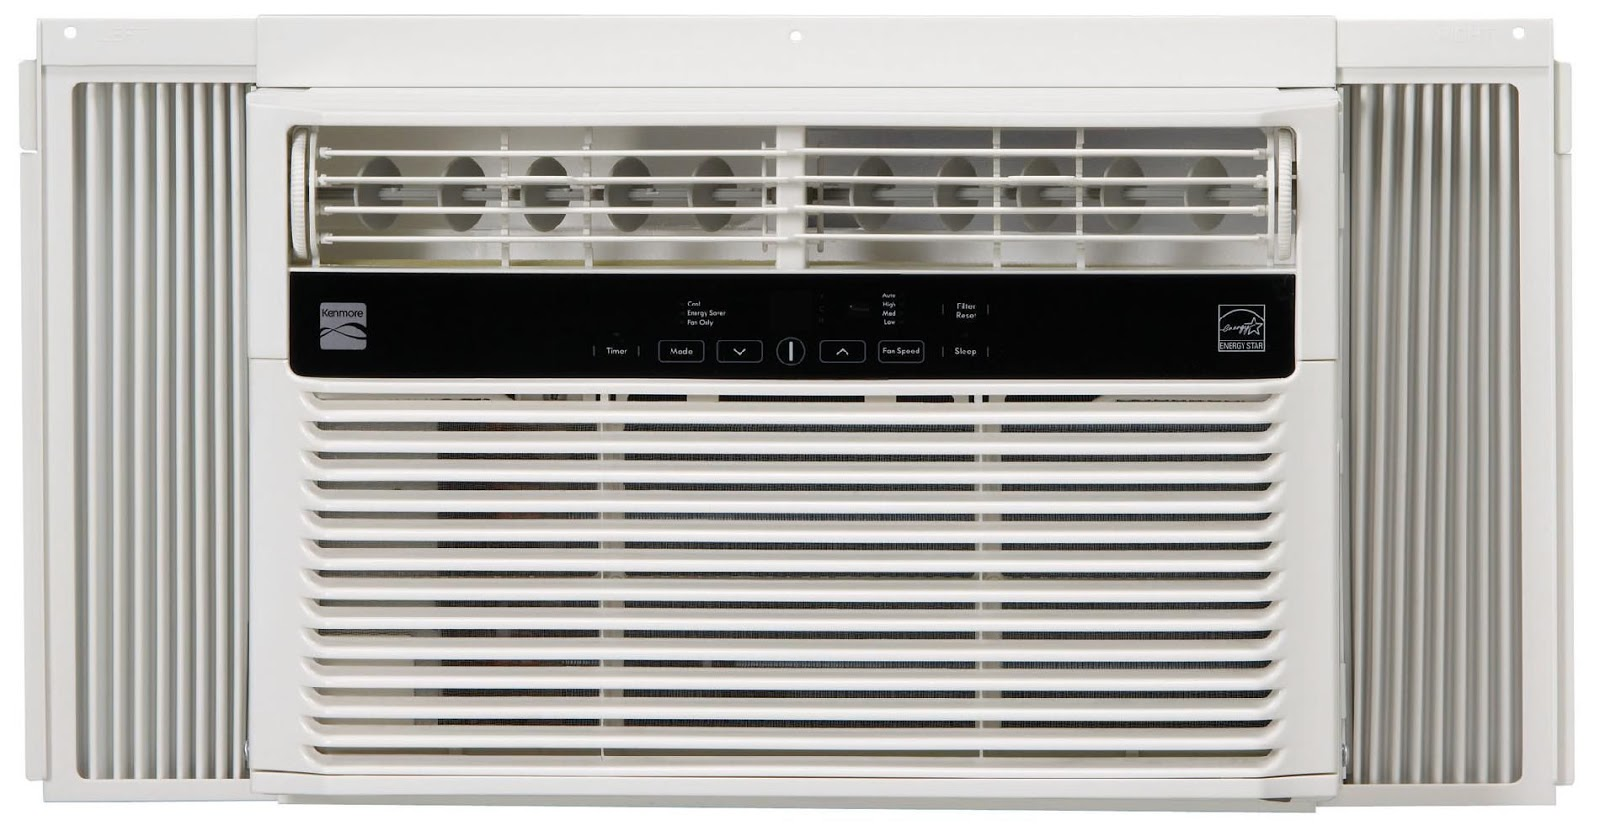 kenmore energy star 5,200 btu room air conditioner $80 + free store